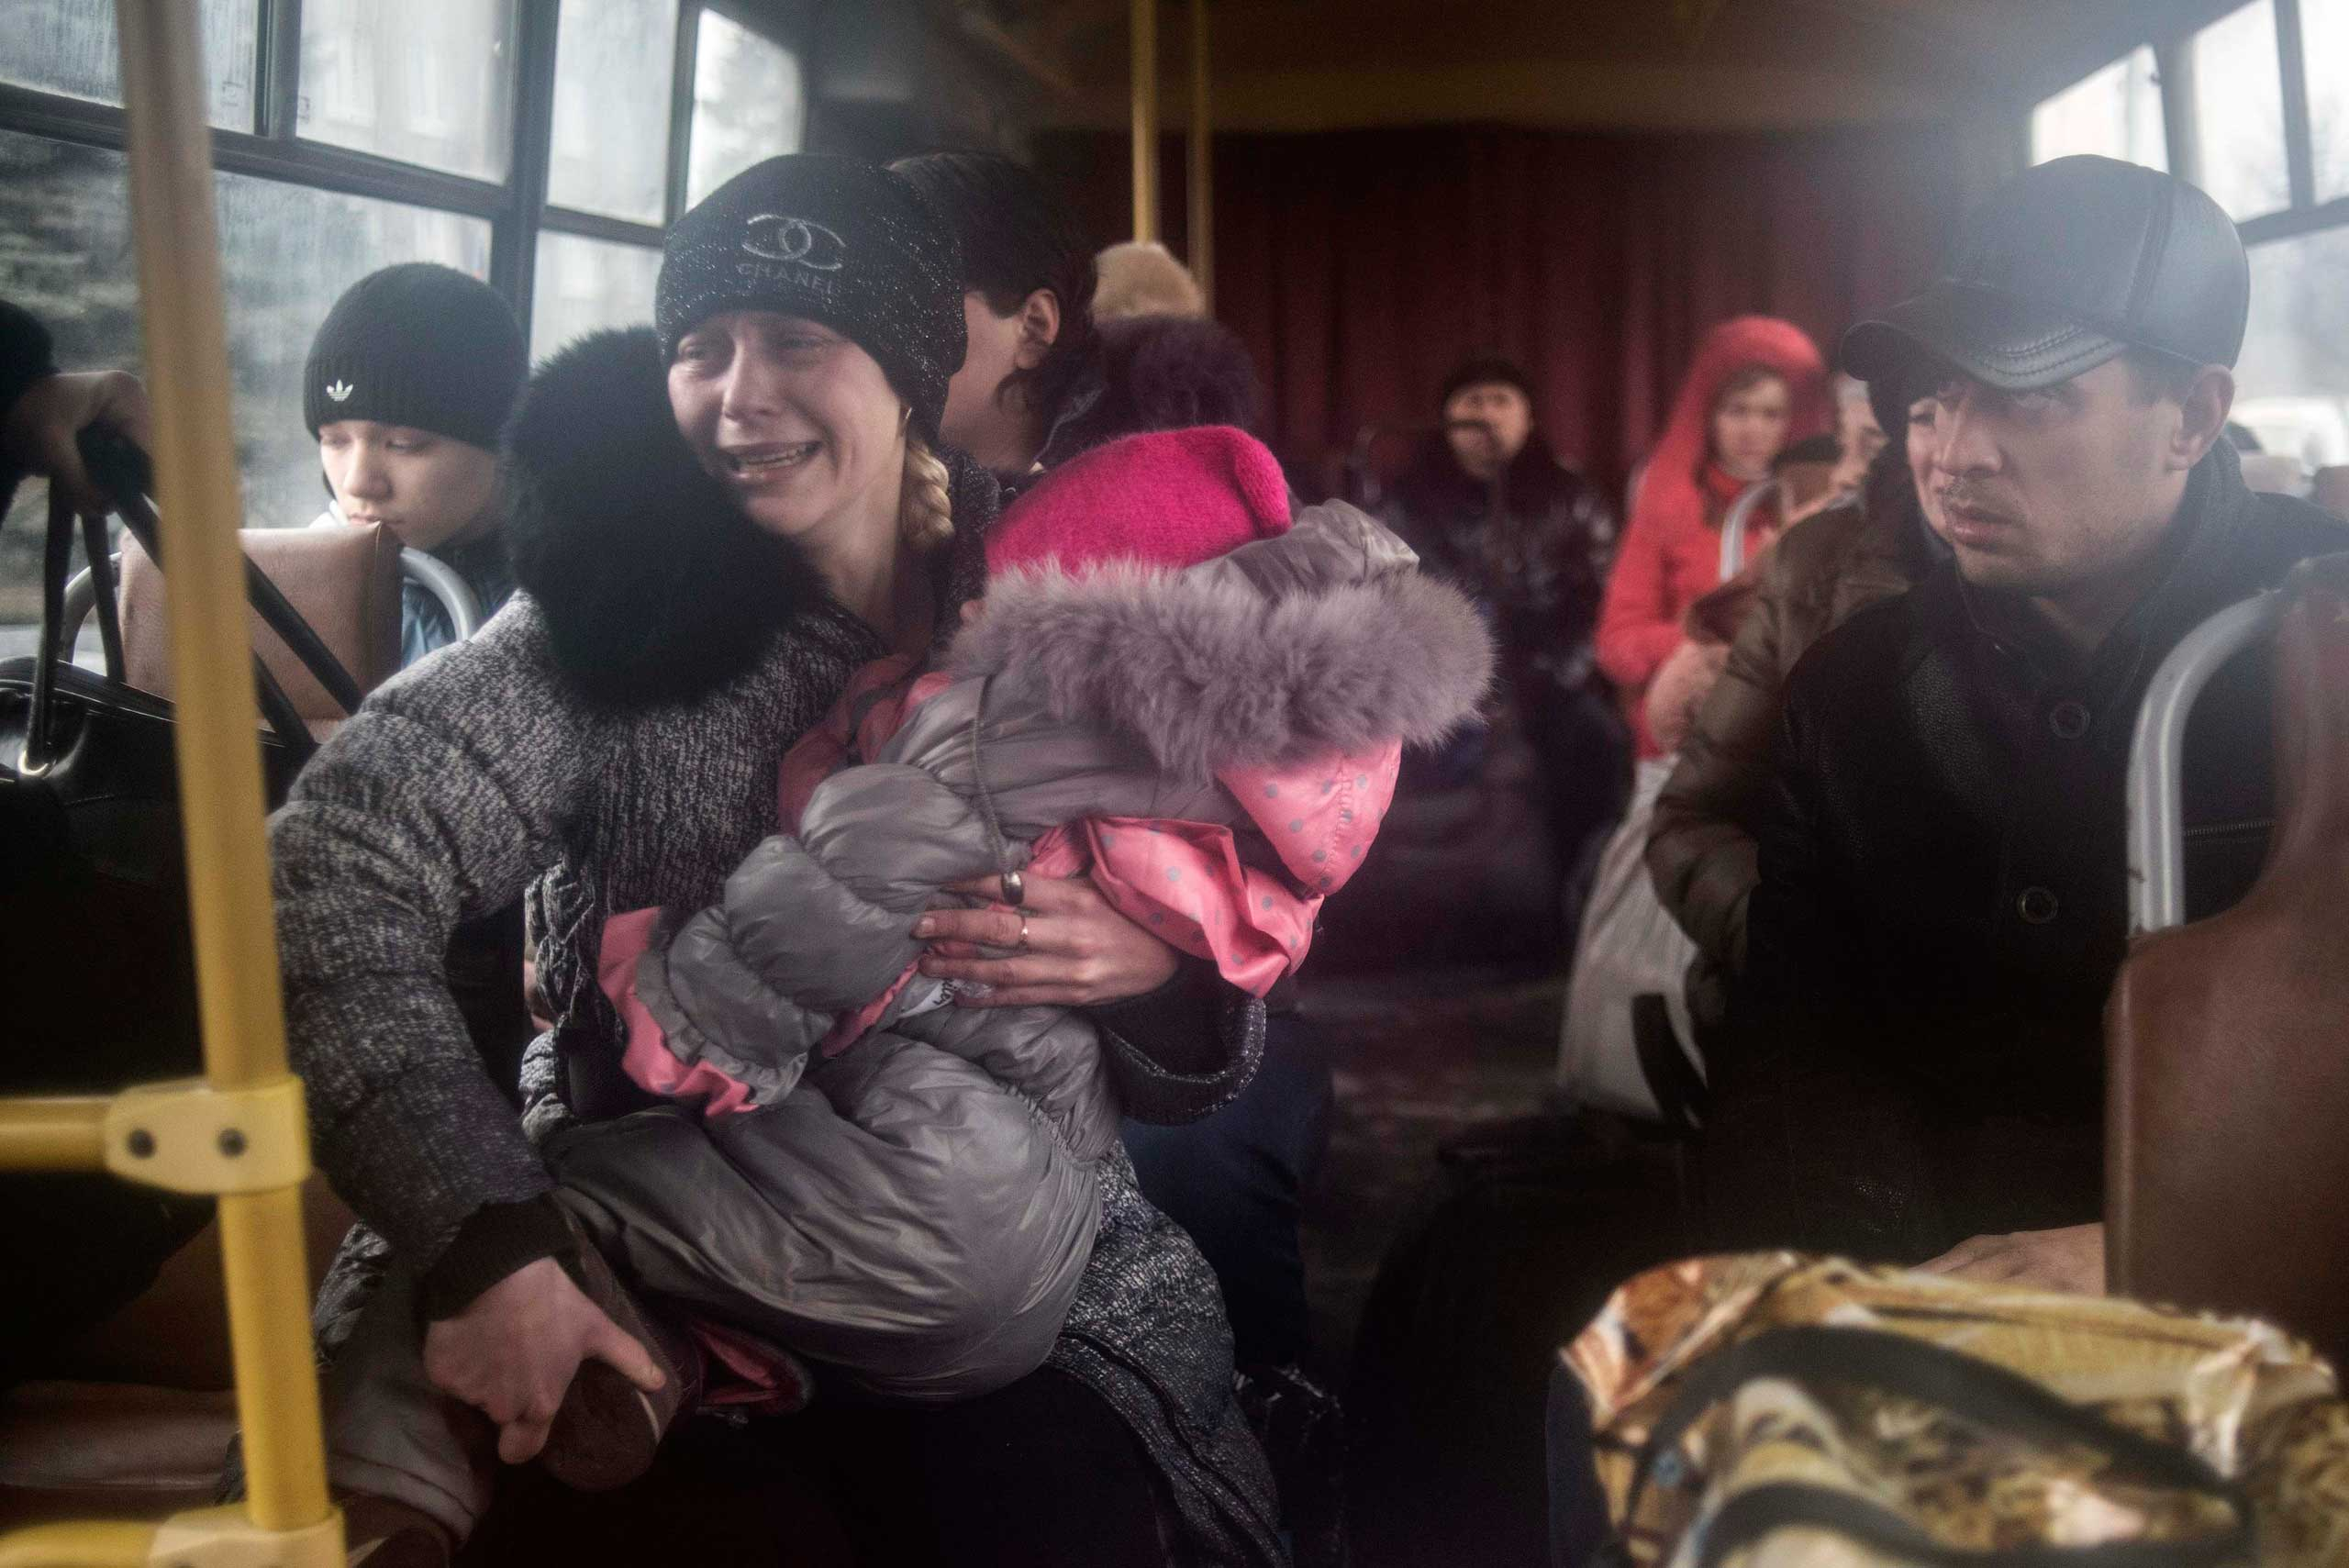 Feb. 3, 2015. People sit inside a bus before the departure, as they flee due to the military conflict in the town of Debaltseve, Ukraine. Fighting has been particularly intense around the town, a major rail and road junction northeast of the city of Donetsk, which government troops are still holding.